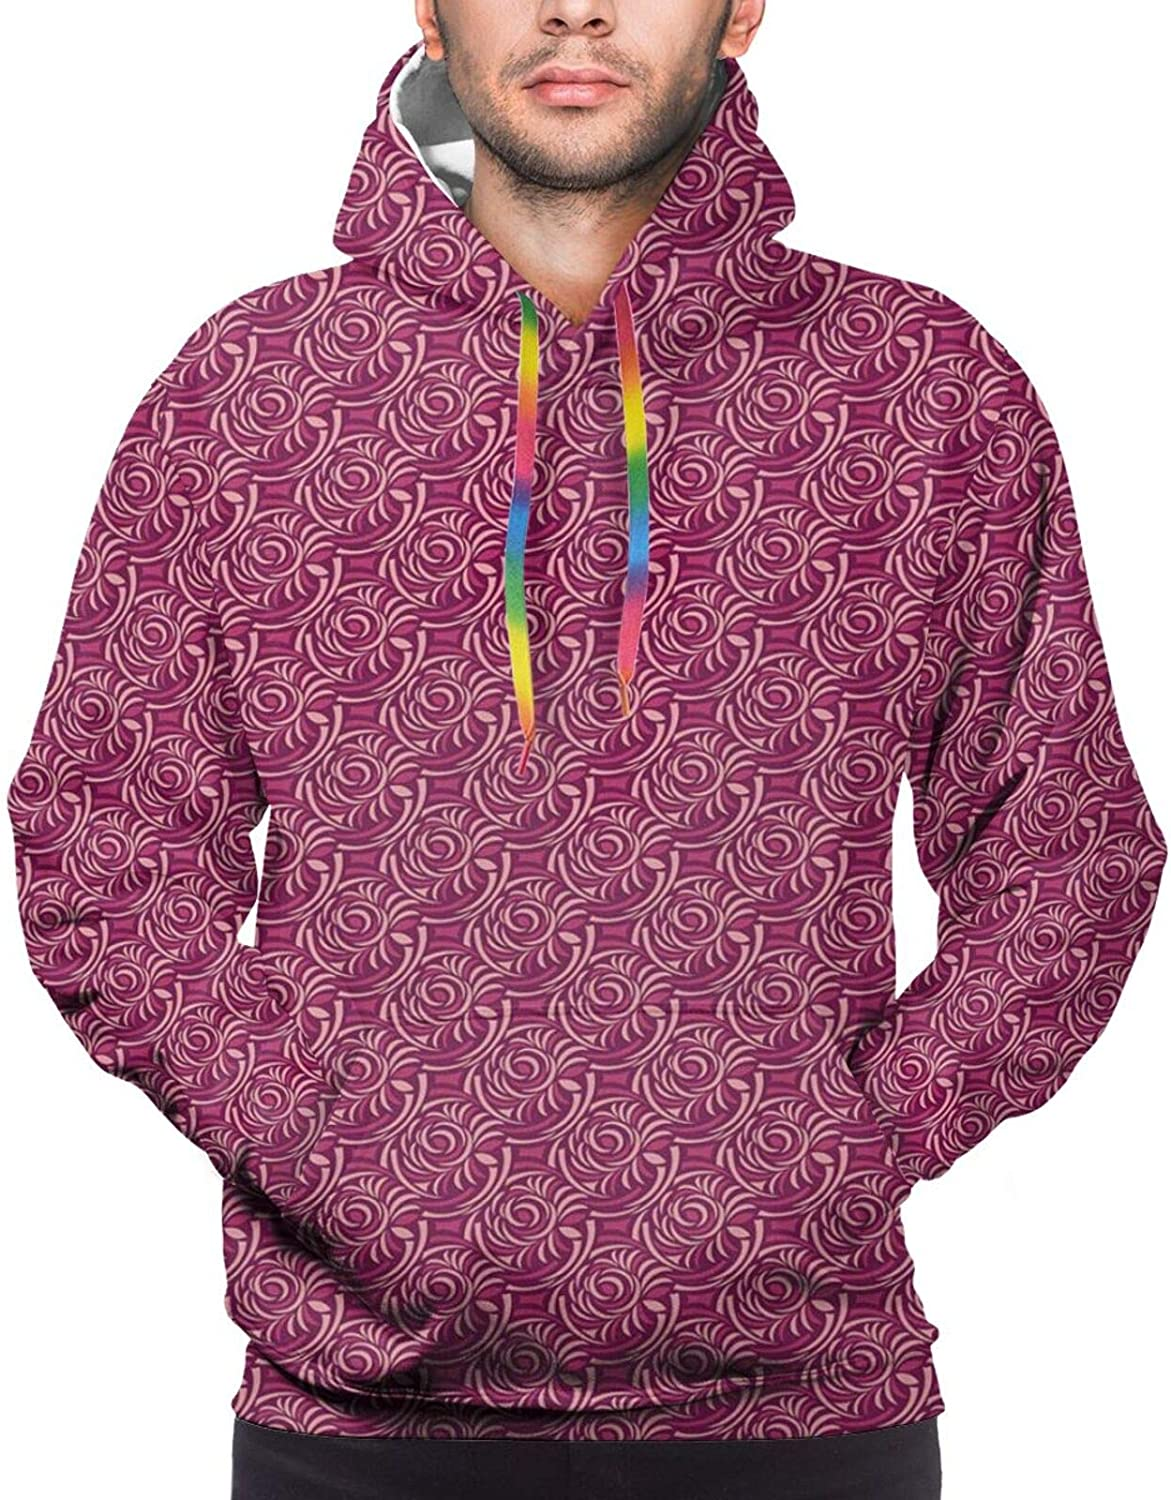 Men's Hoodies Sweatshirts,Abstract Dotted Background Electric Guitar Musical Instrument Design Rock